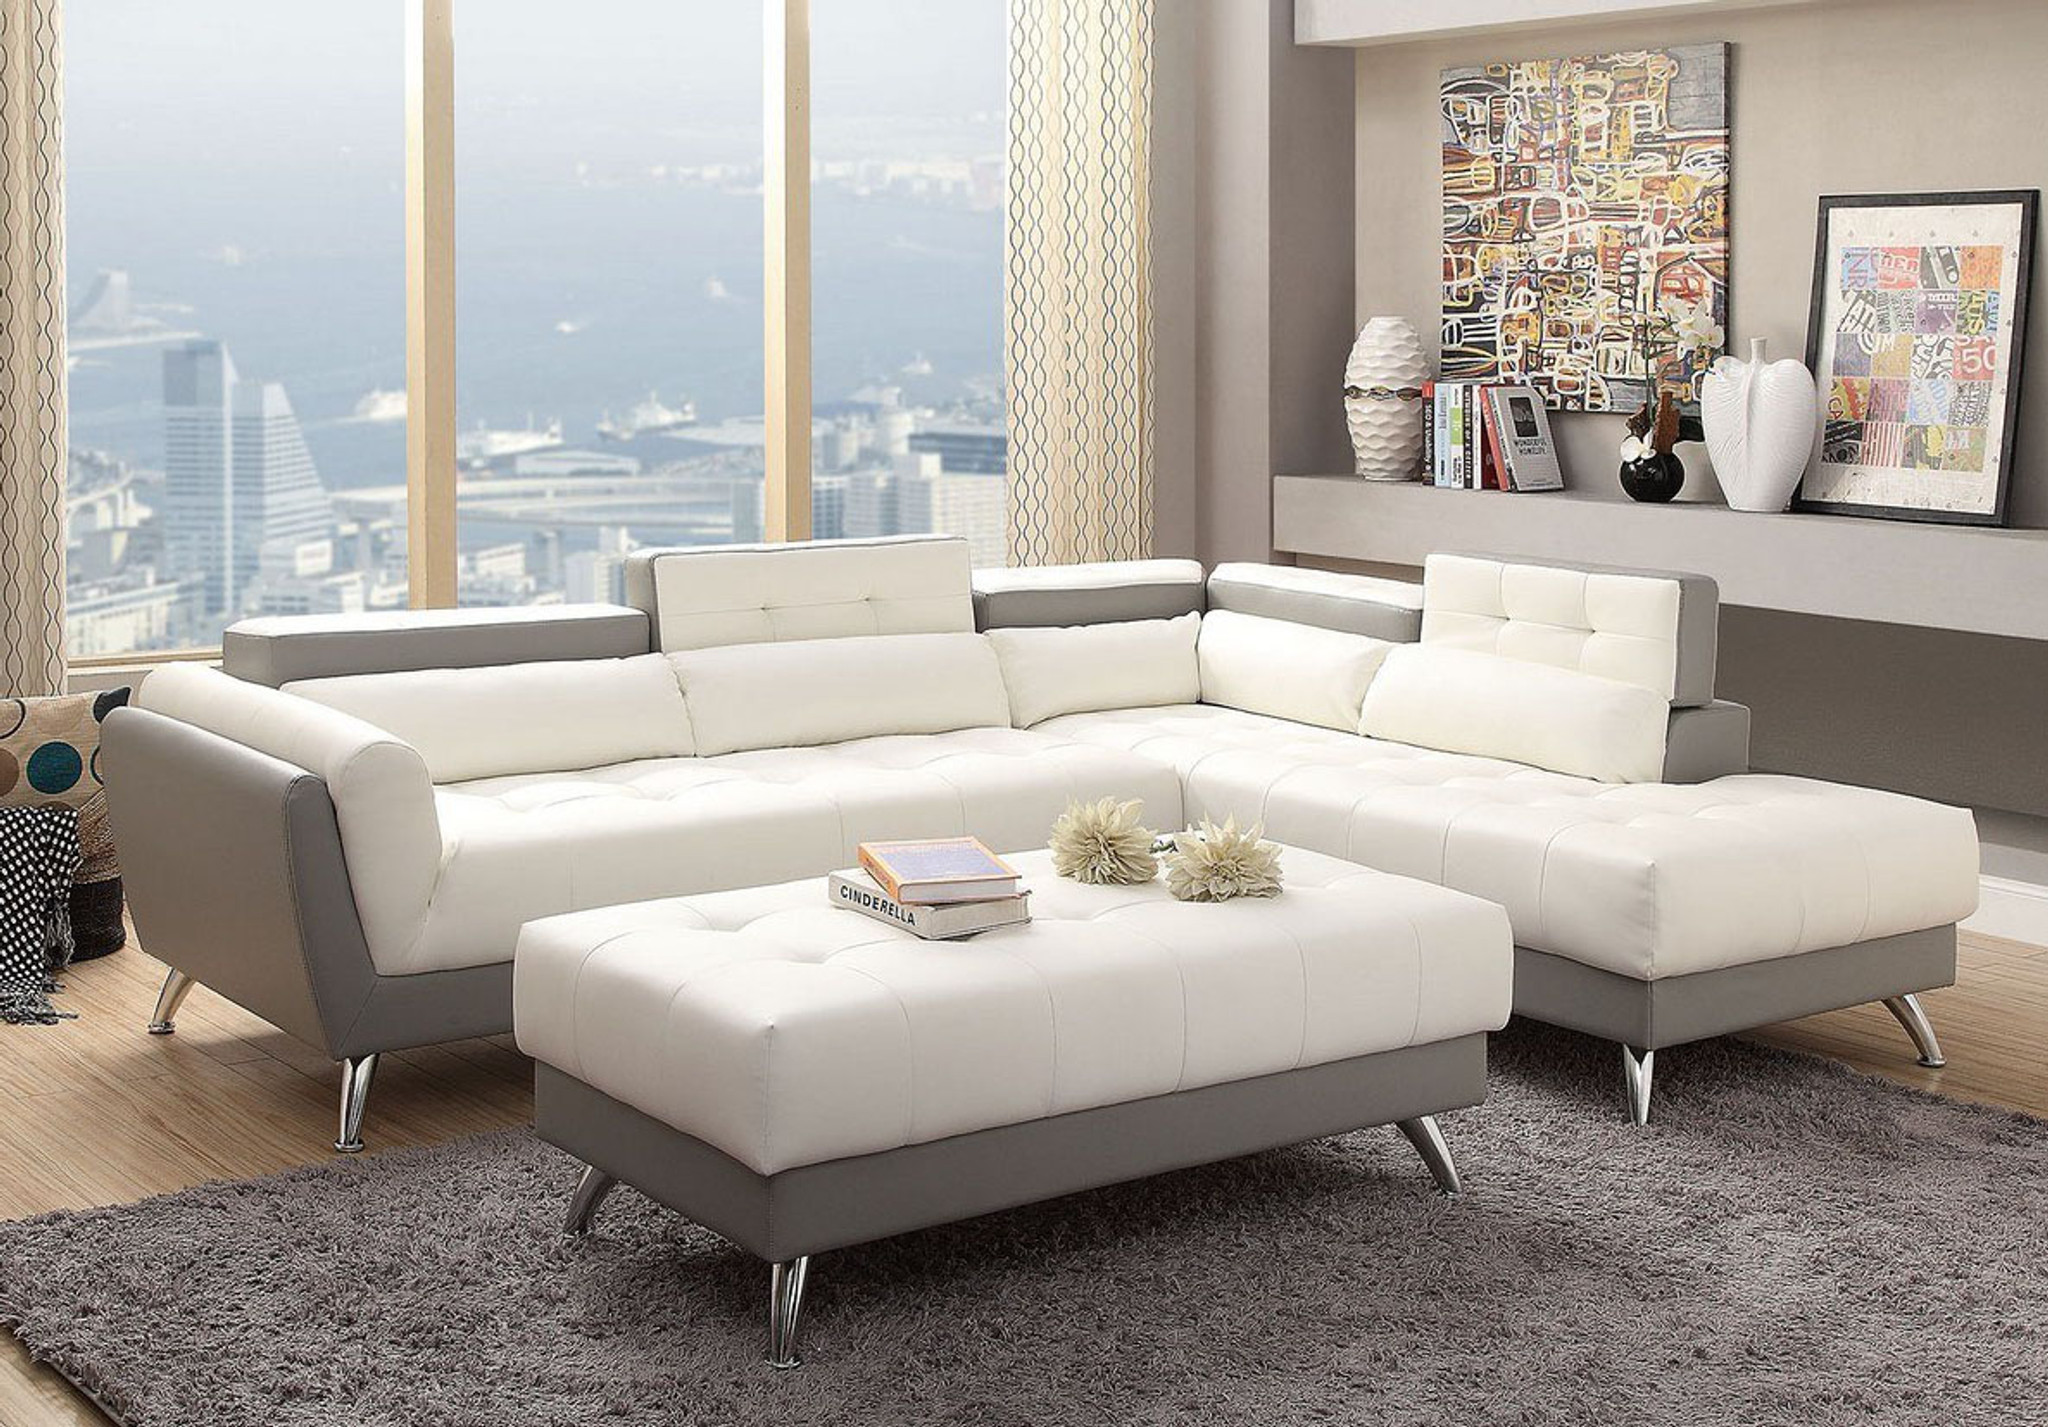 Kassa Mall Home Furniture F6979 Modern Wide Plush Seating 2 Pcs Sectional In White Light Grey Leather Storage On Corner Back